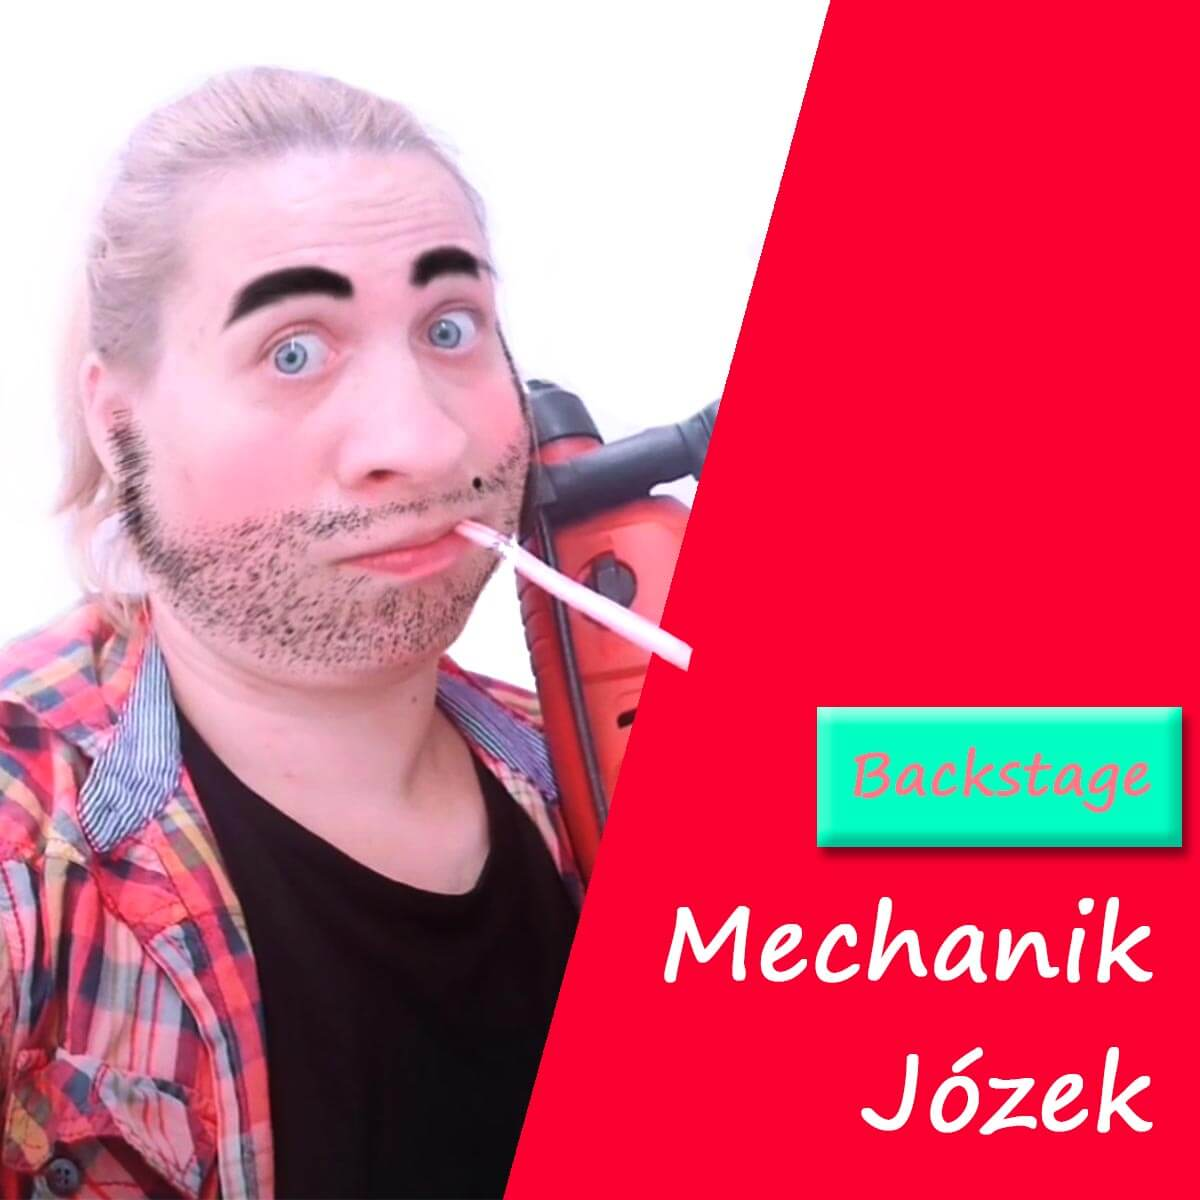 mechanik józek1